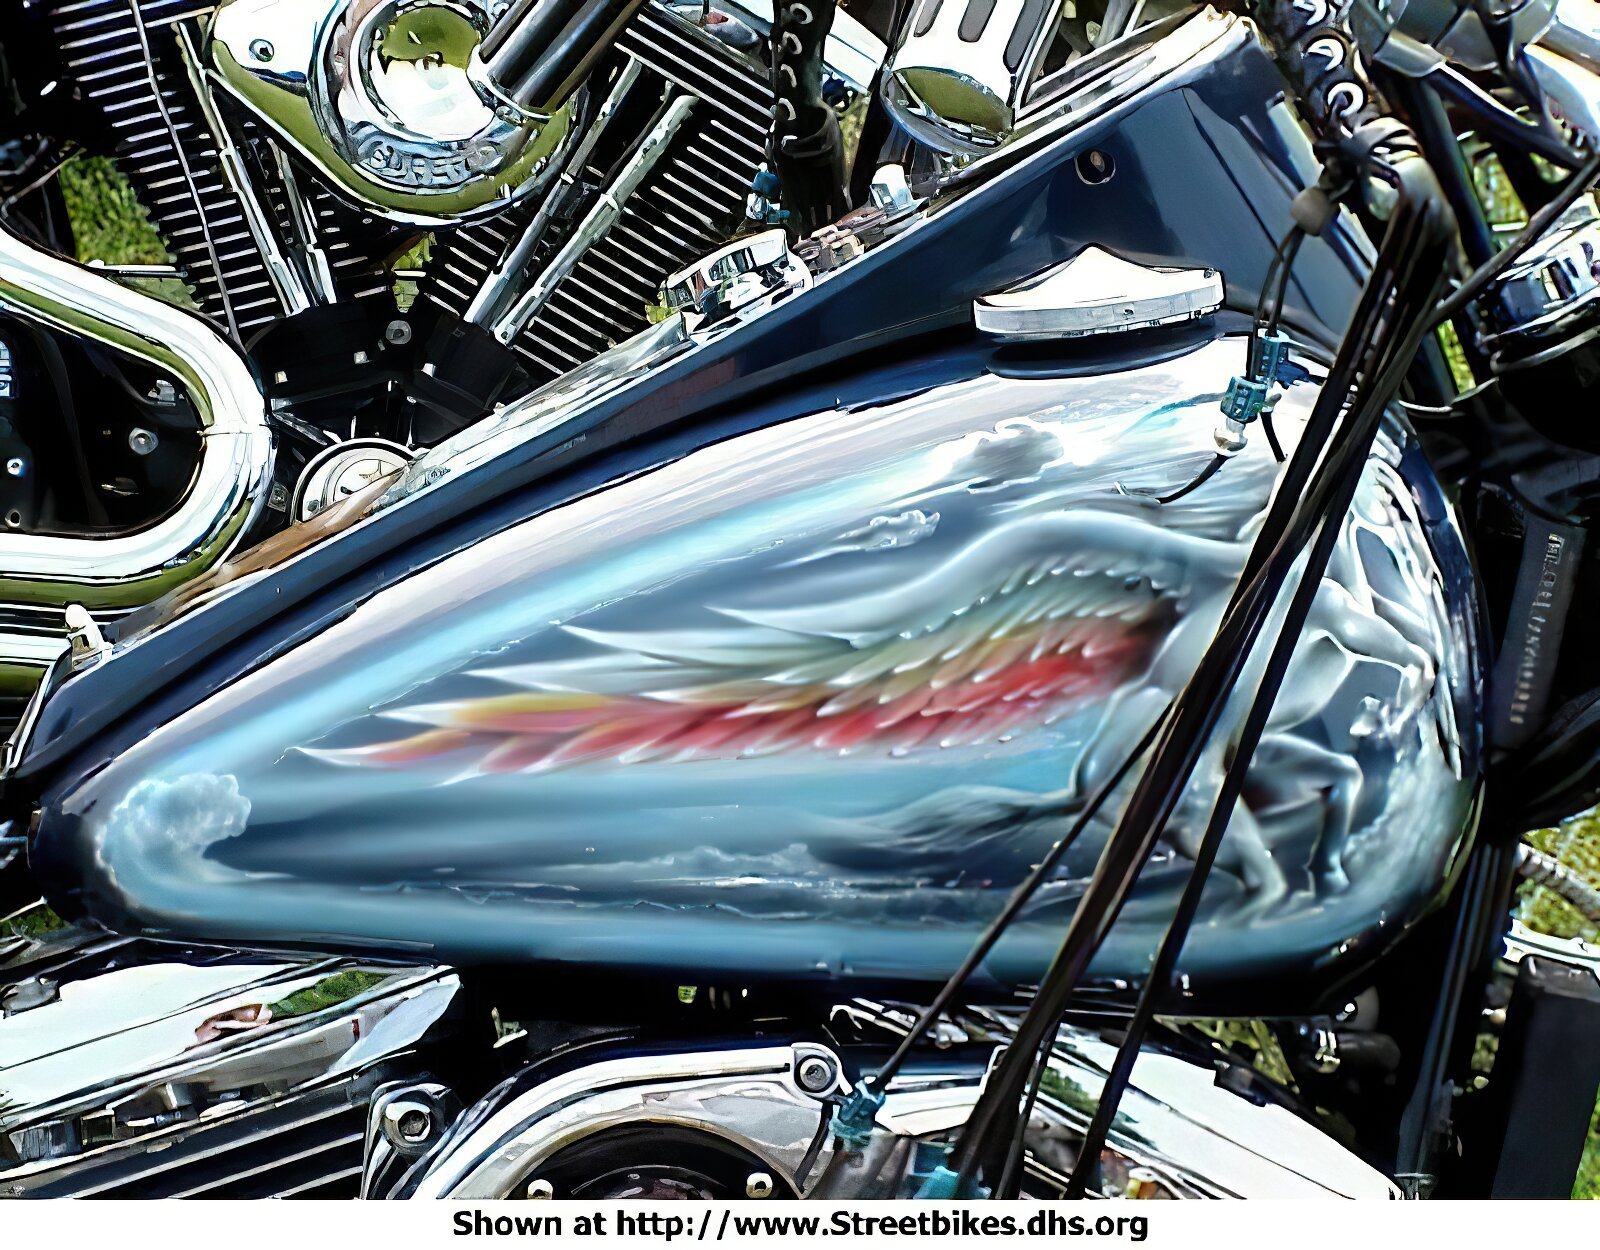 Harley-Davidson Unknown (HD) - ID: 40